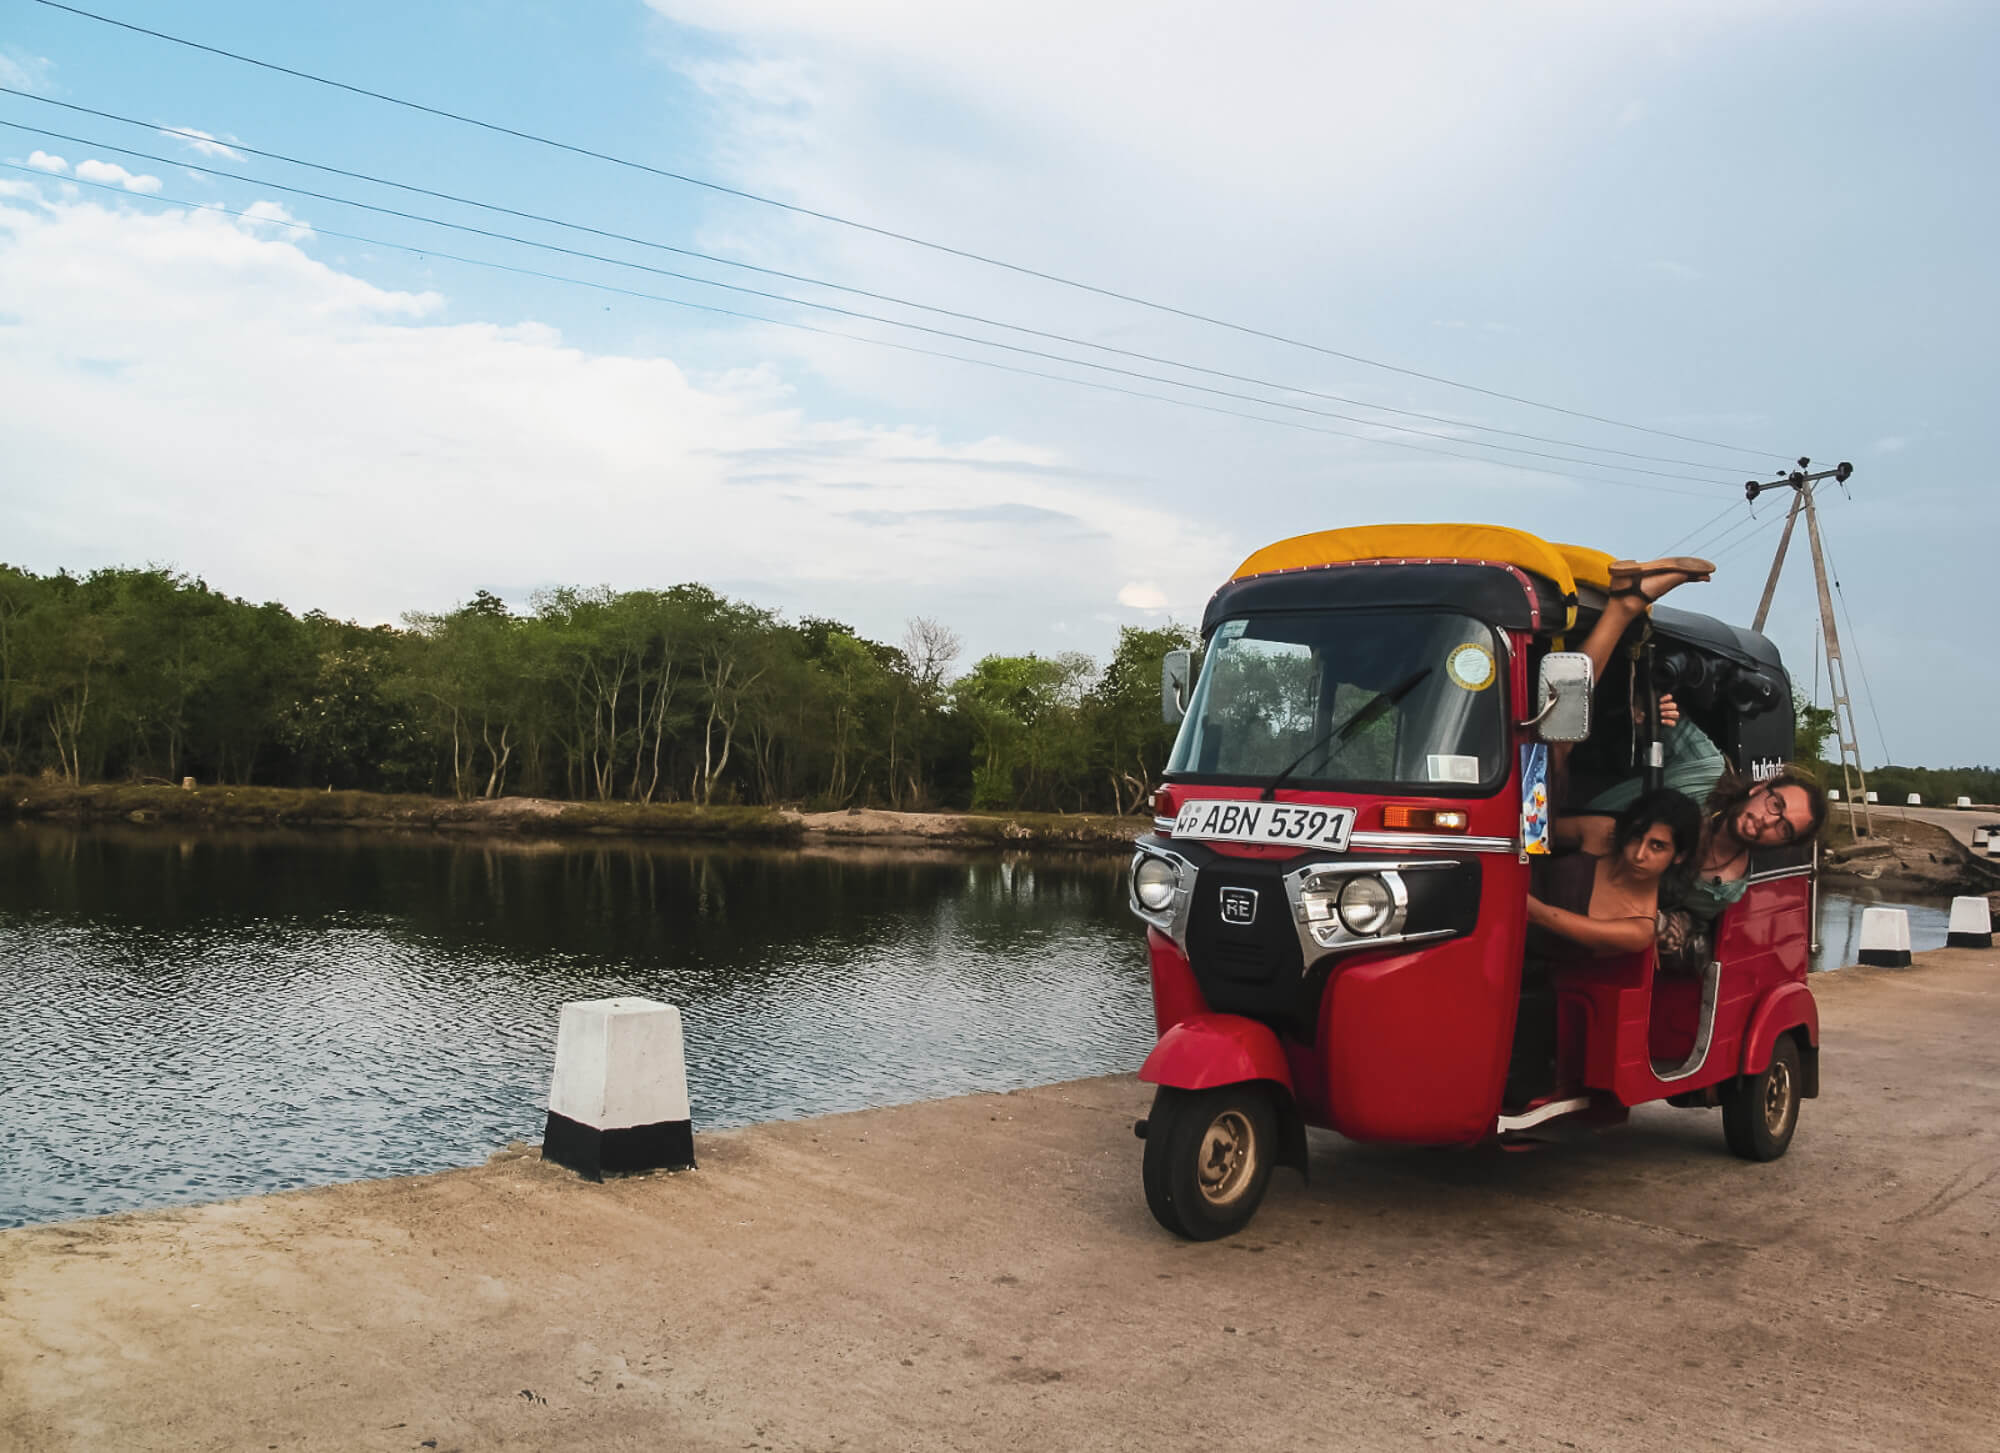 Travelling with a girl and friend by tuk-tuk in Sri Lanka